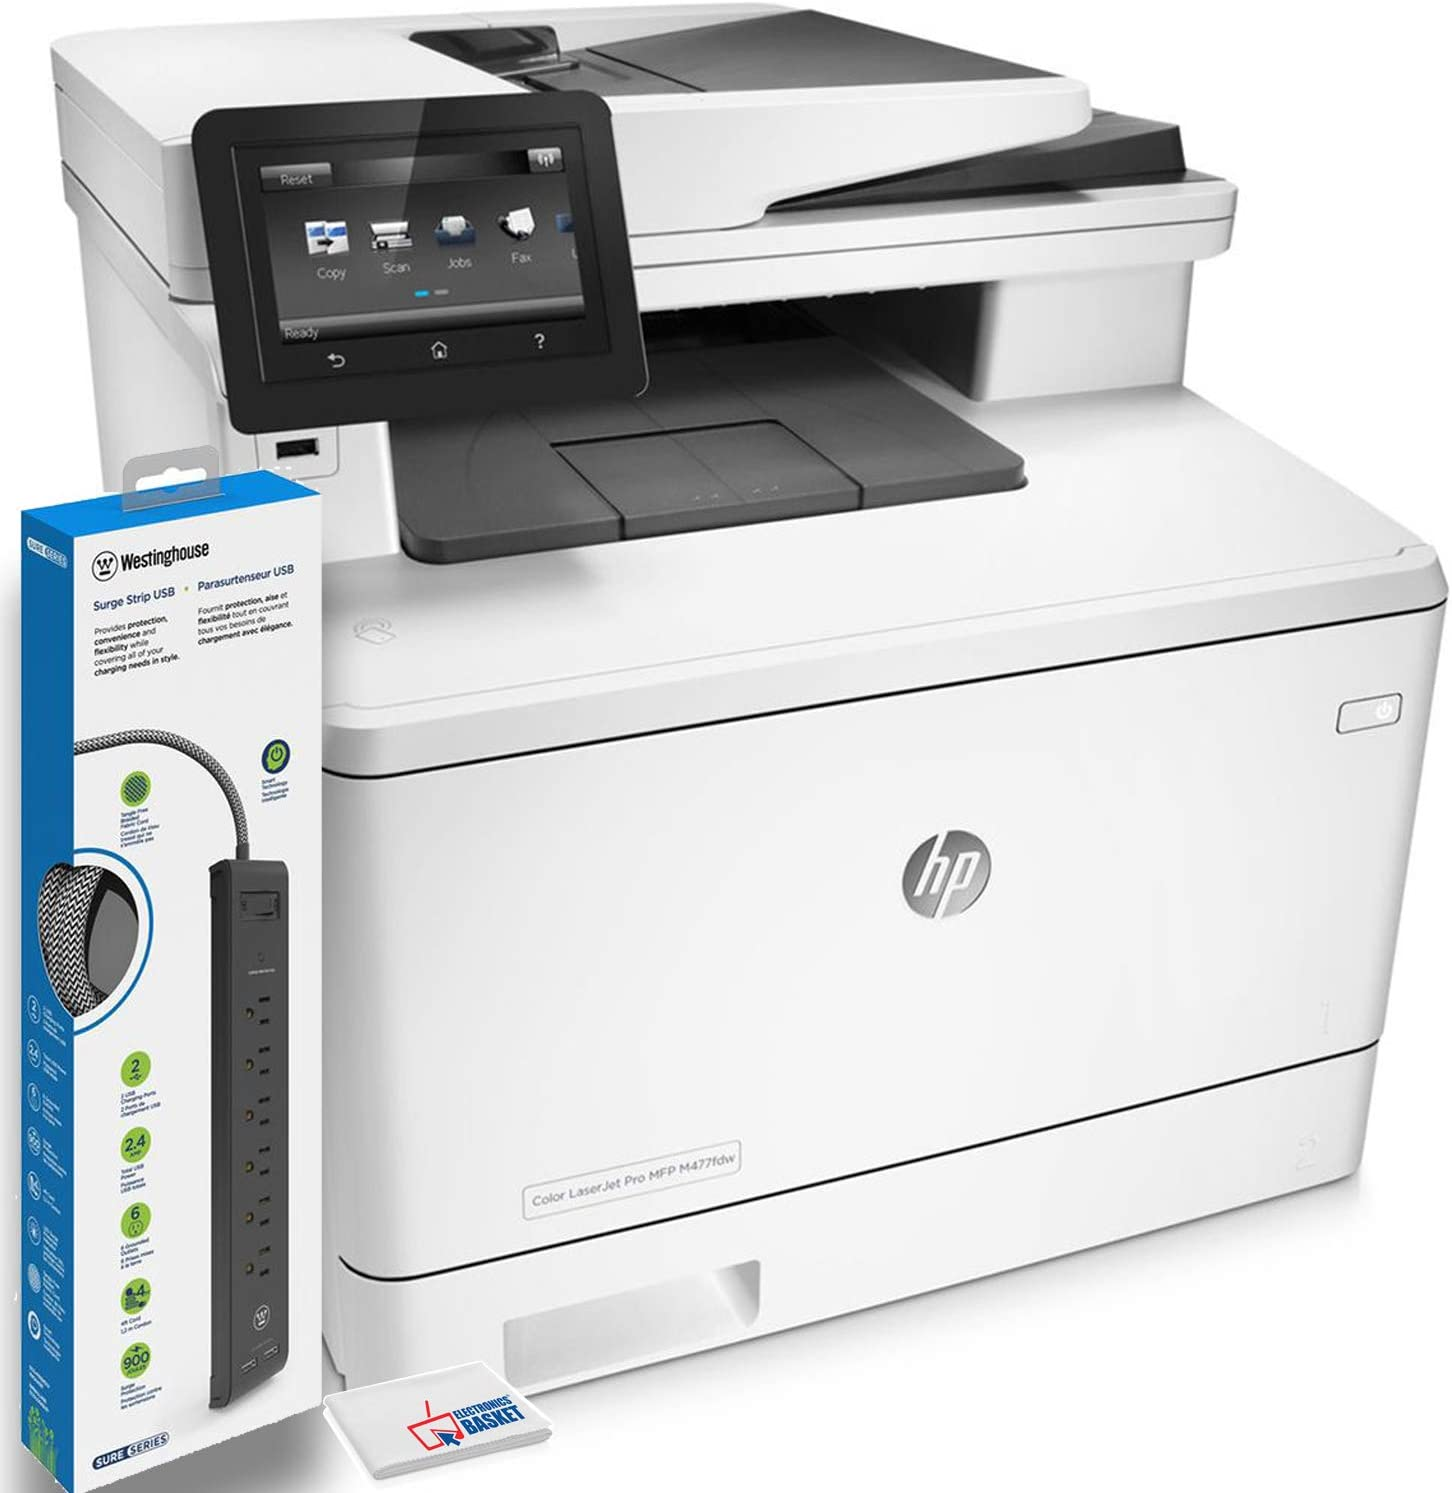 HP Color Laserjet Pro M477fdw All-in-One Laser Printer (CF379A) with Power Strip Surge Protector and Electronics Basket Microfiber Cleaning Cloth